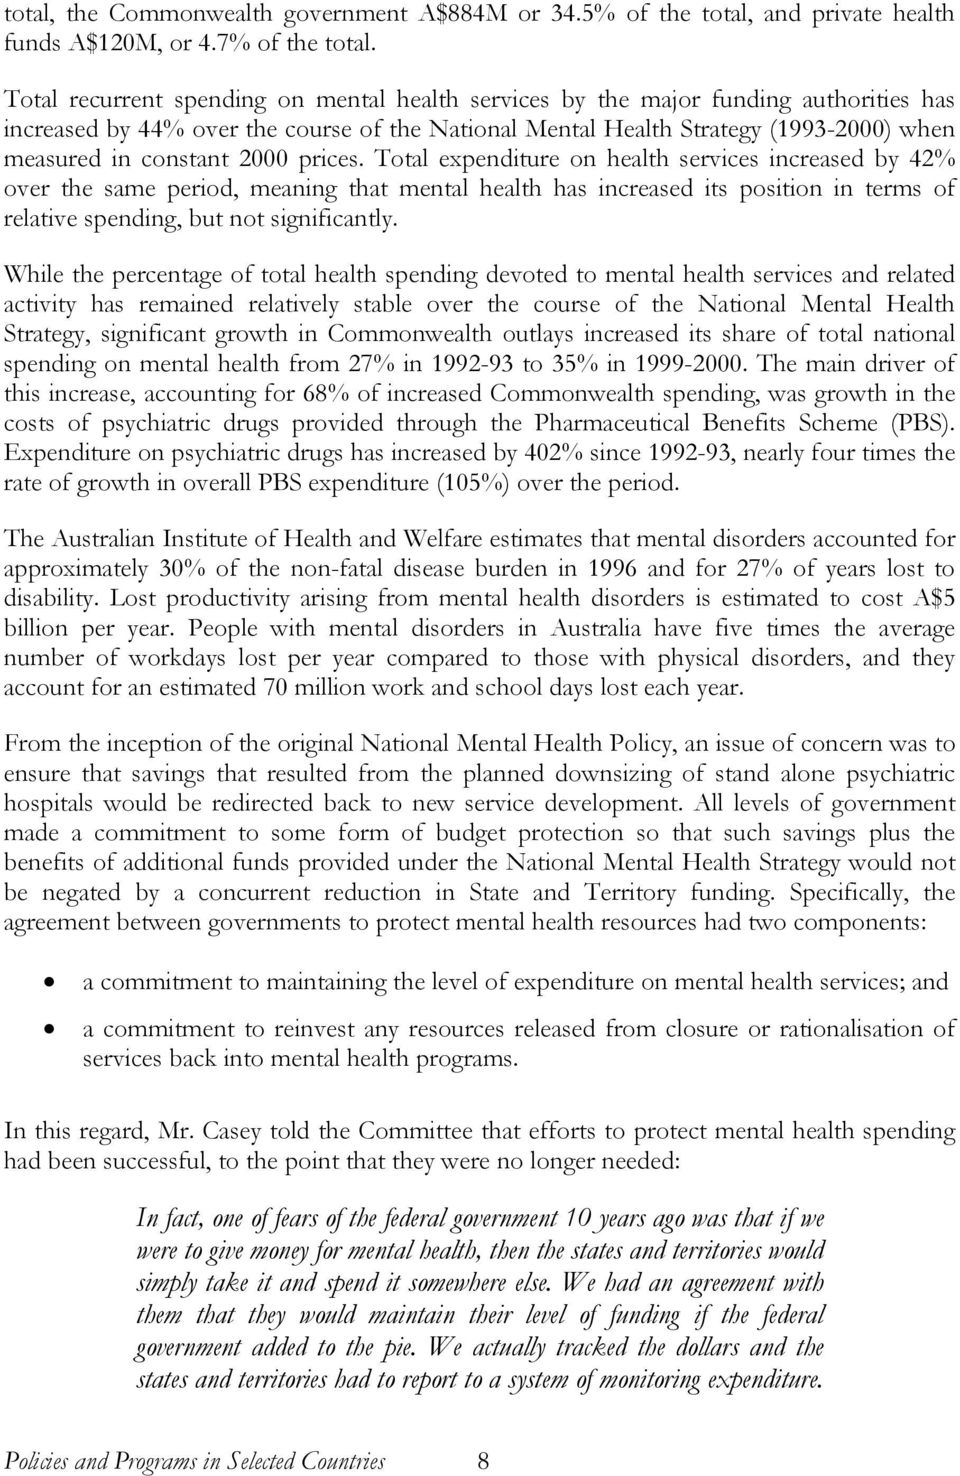 2000 prices. Total expenditure on health services increased by 42% over the same period, meaning that mental health has increased its position in terms of relative spending, but not significantly.